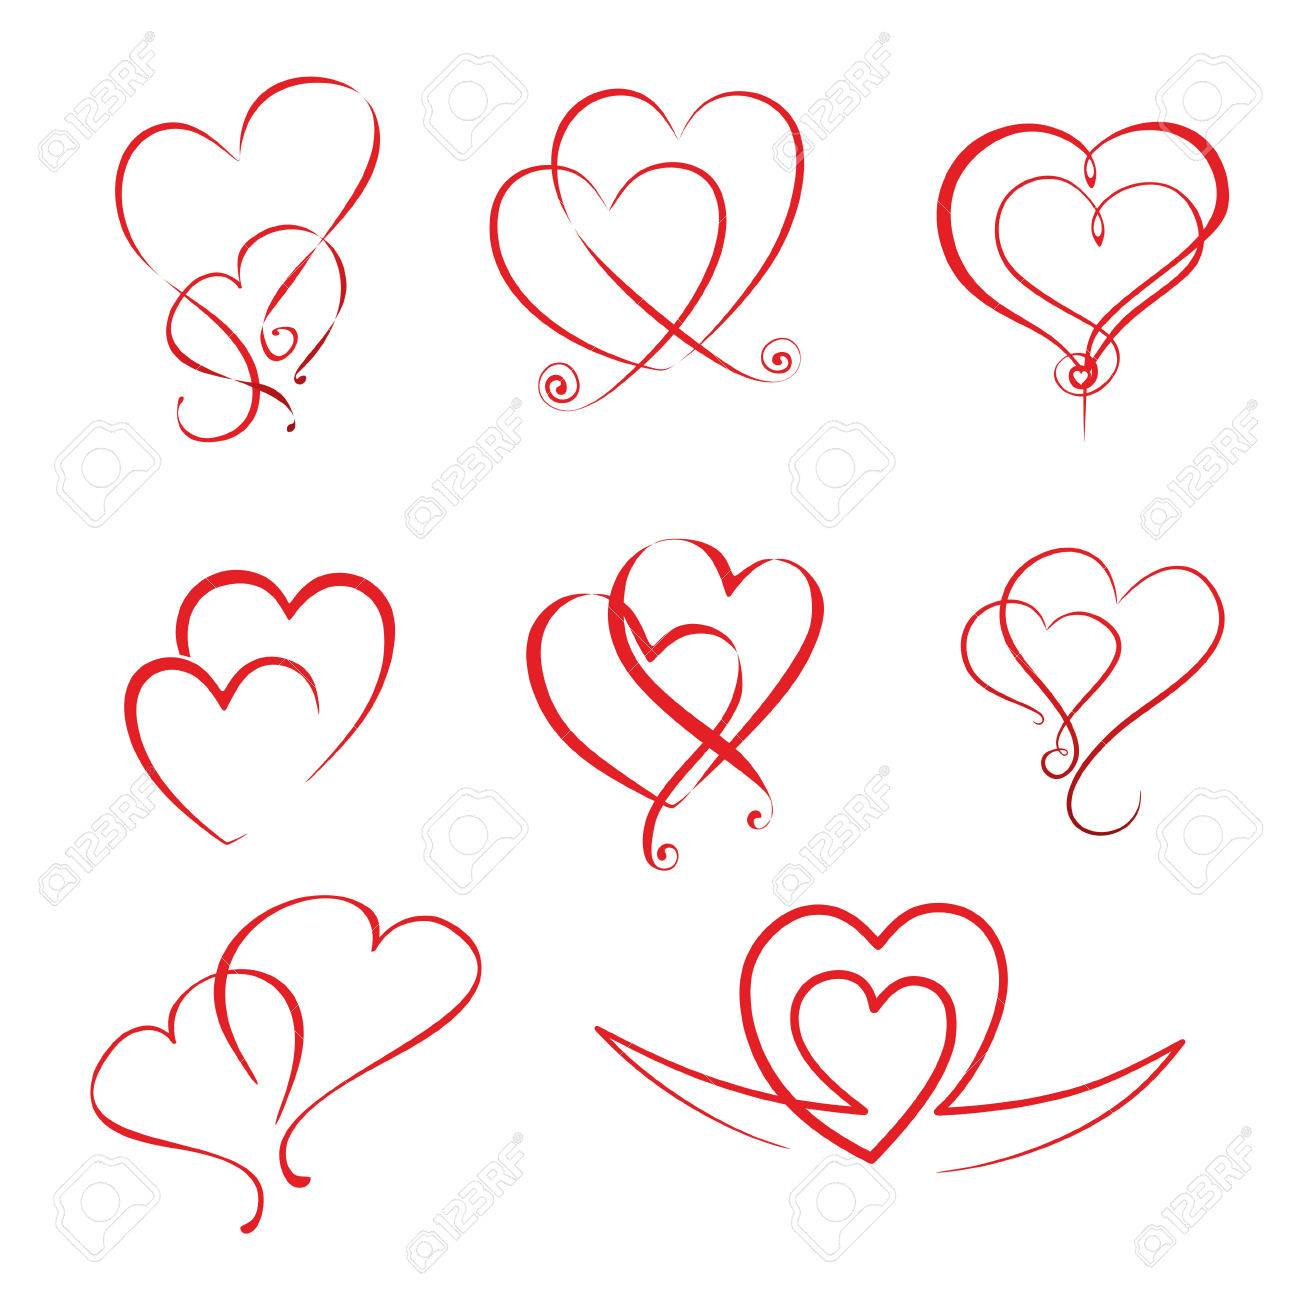 illustration of different simple hearts and heart ornaments royalty